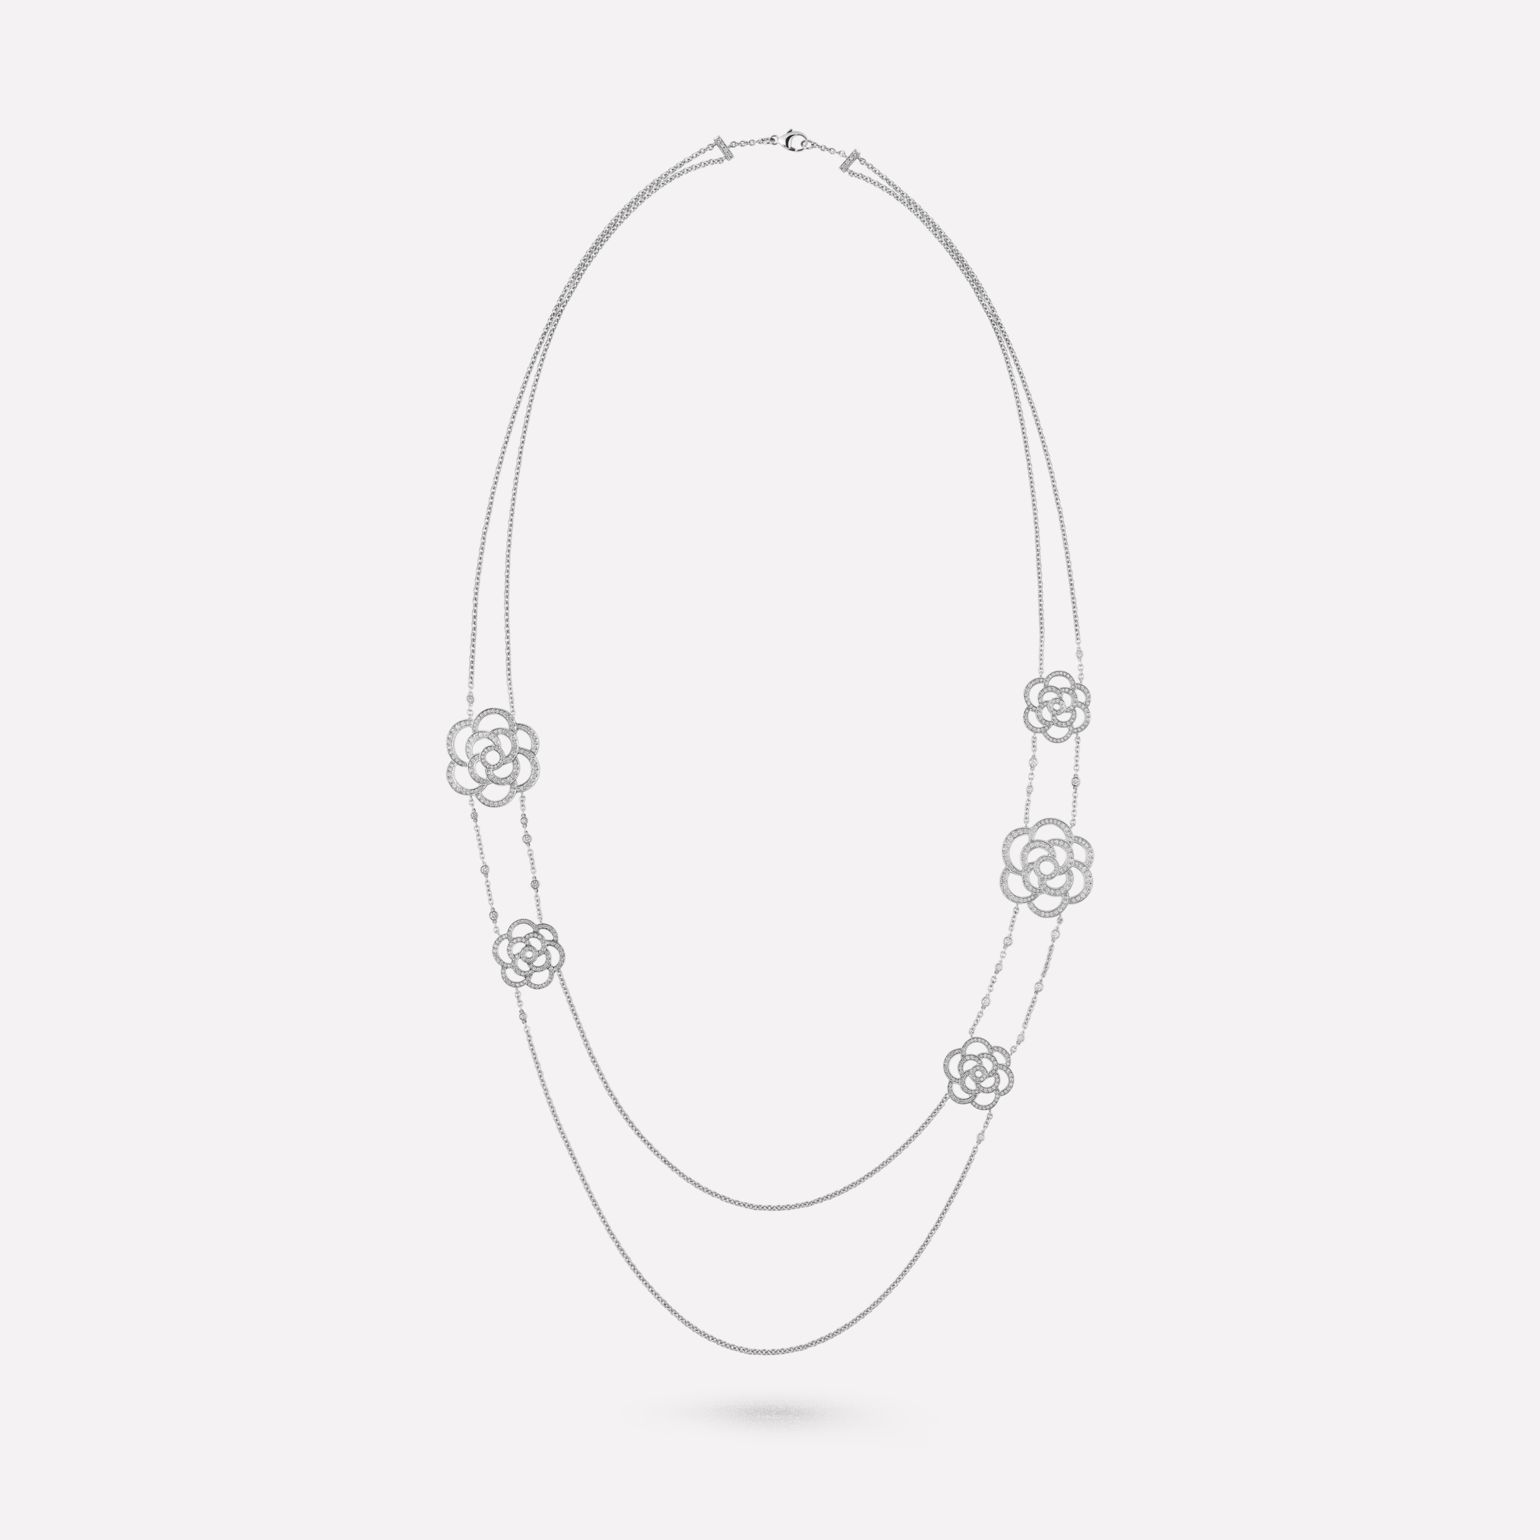 Camélia necklace Camélia Ajouré two-row necklace, in 18K white gold and diamonds